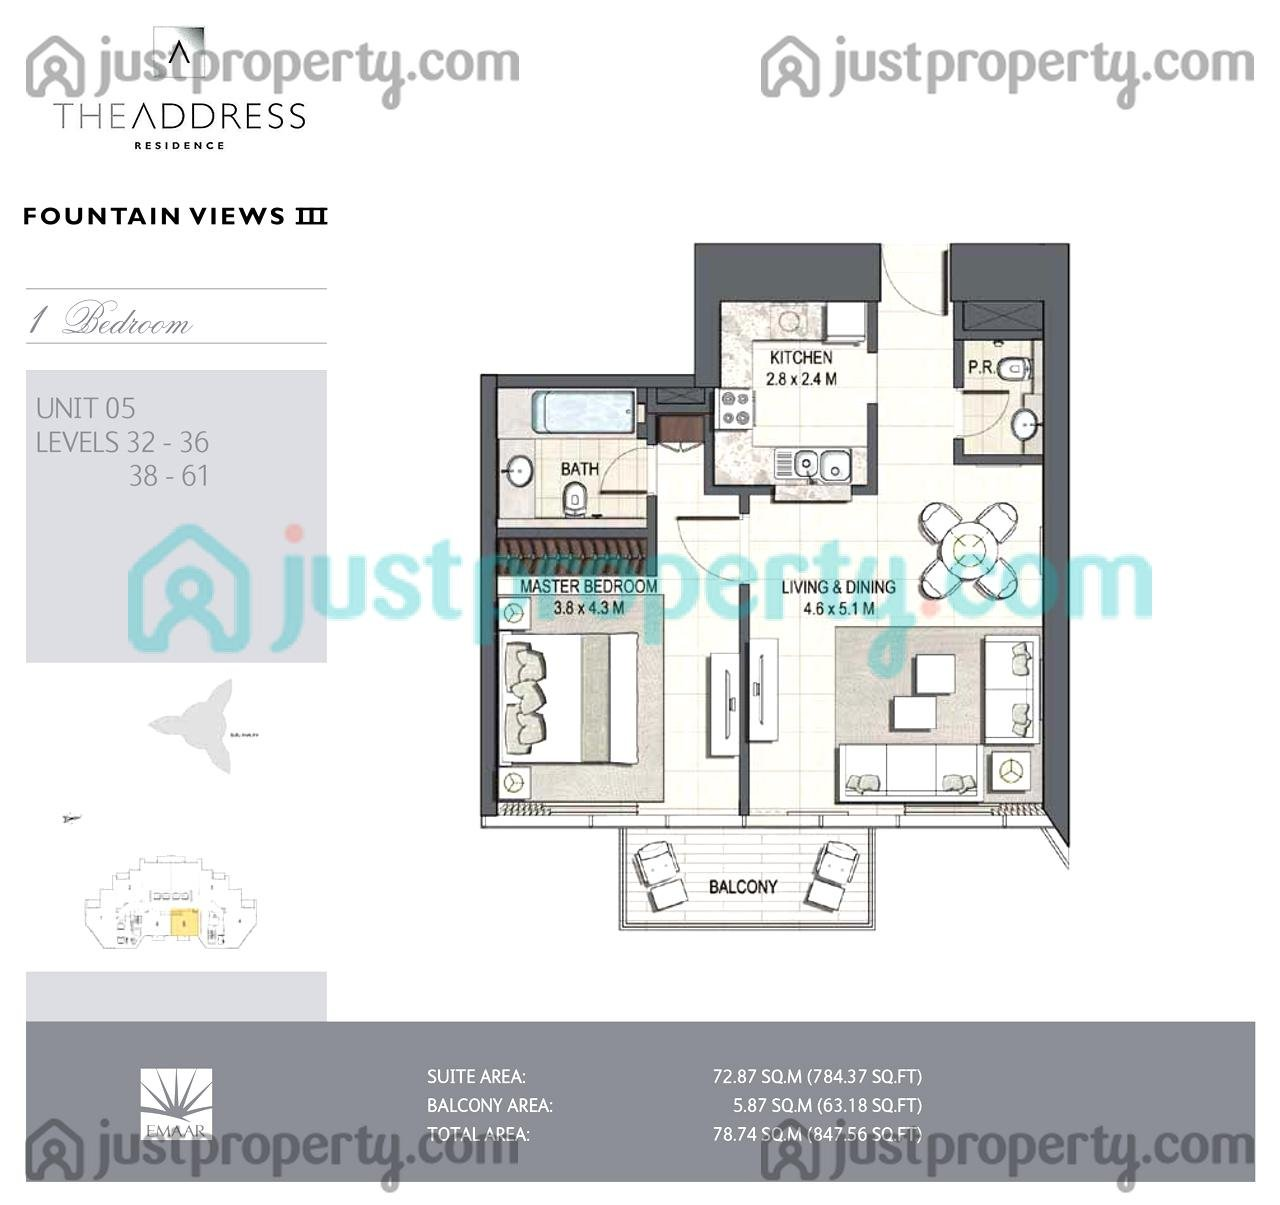 Address fountain views 3 floor plans for Floor plans by address